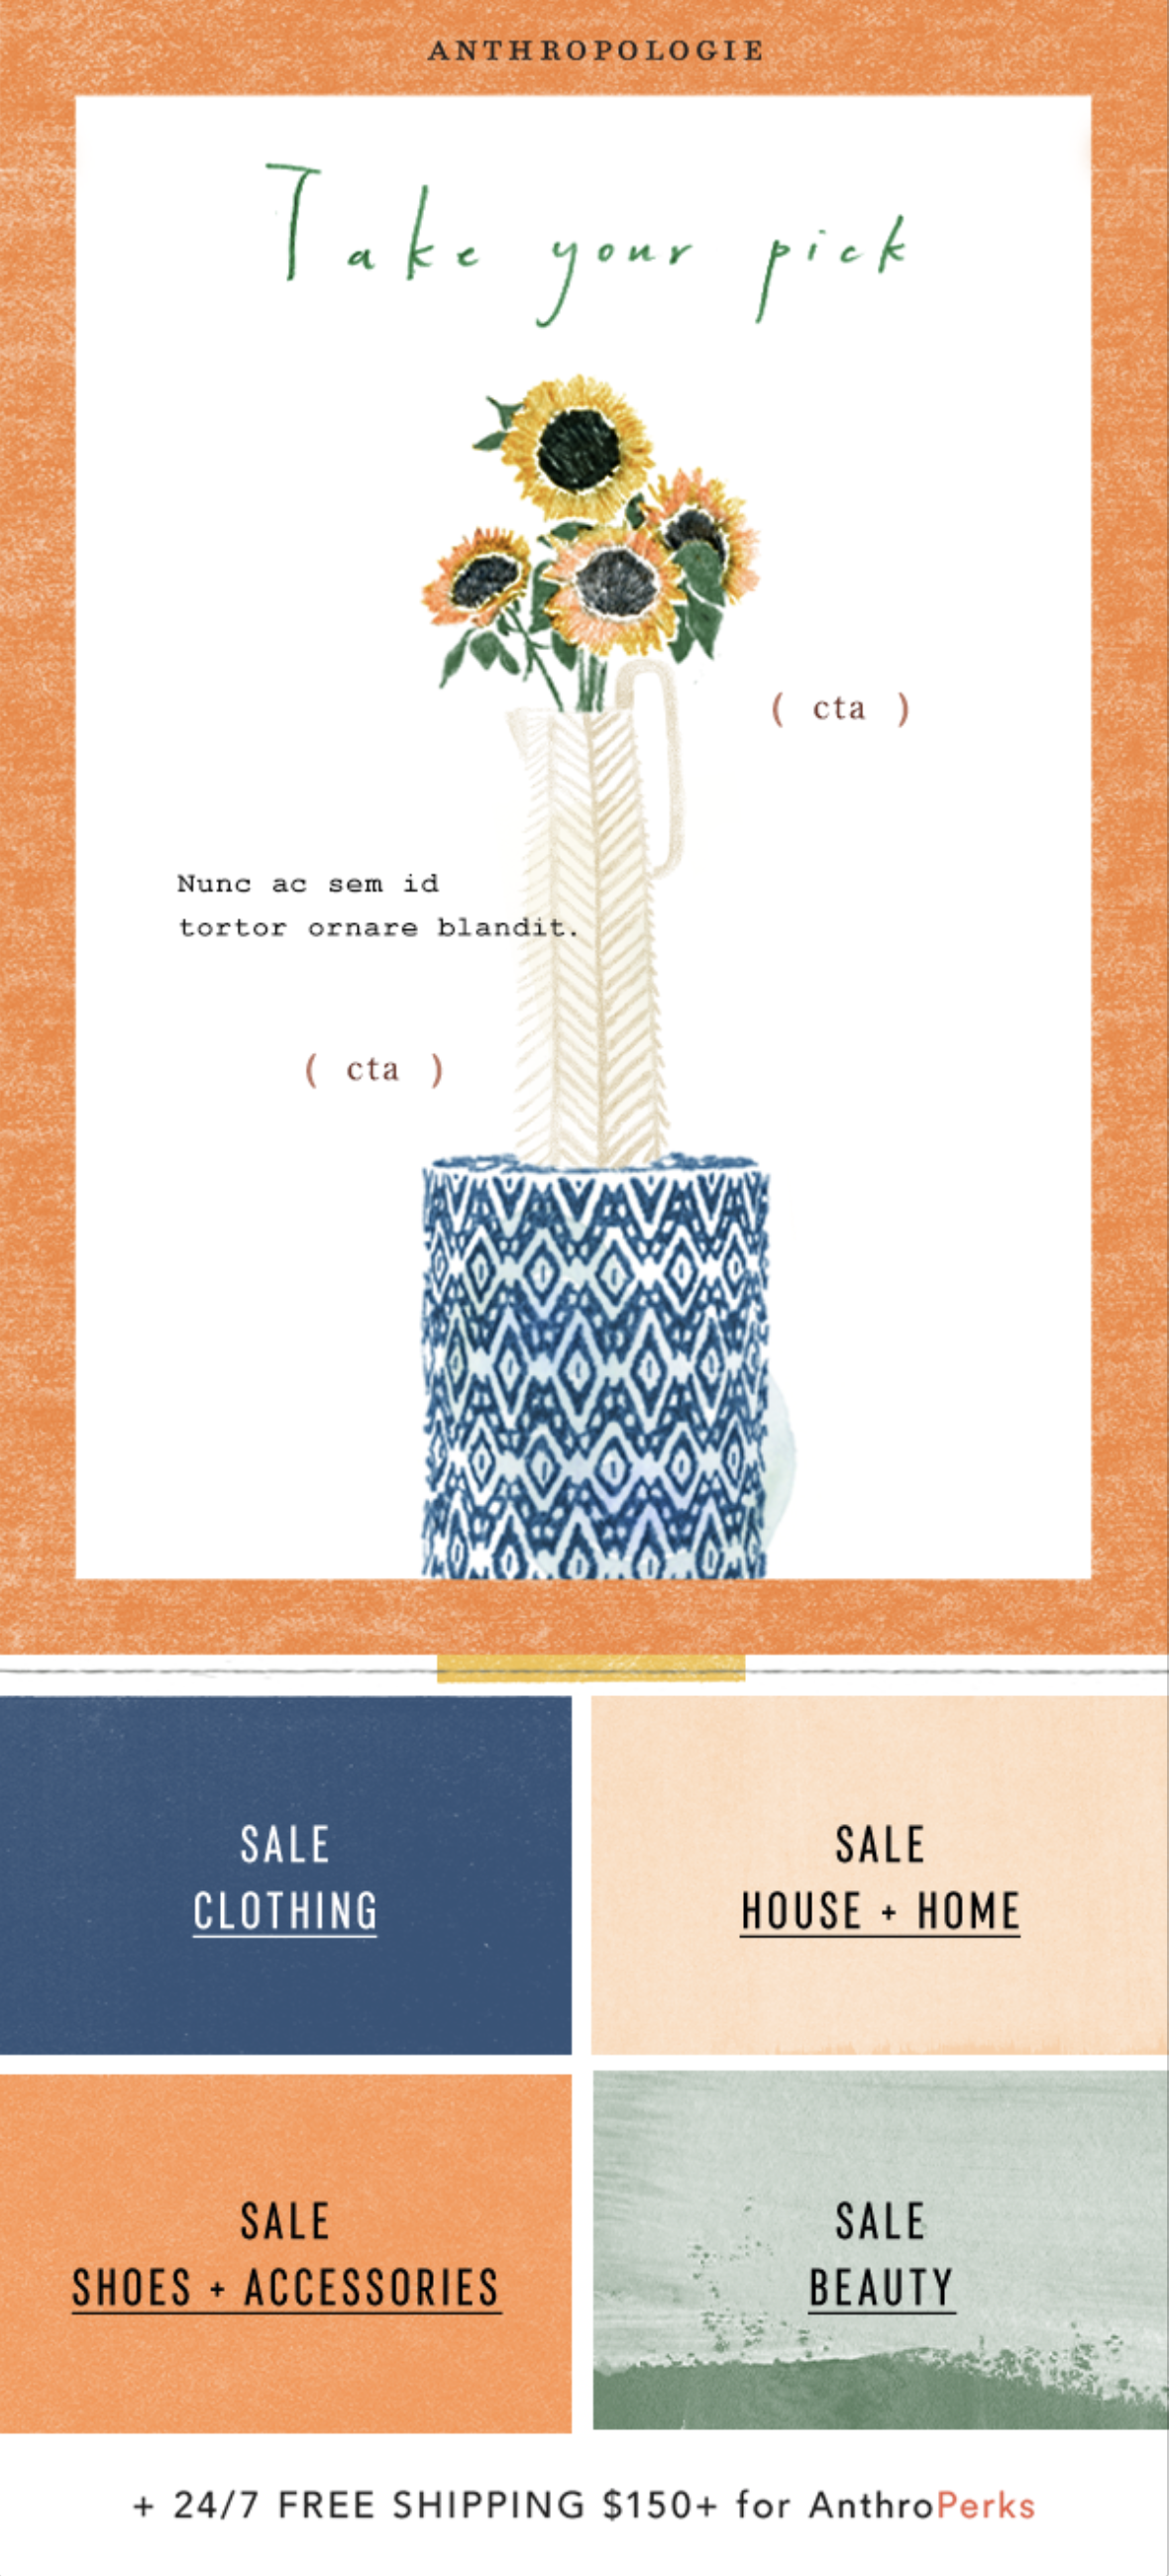 Anthropologie Email Labor Day Art.png